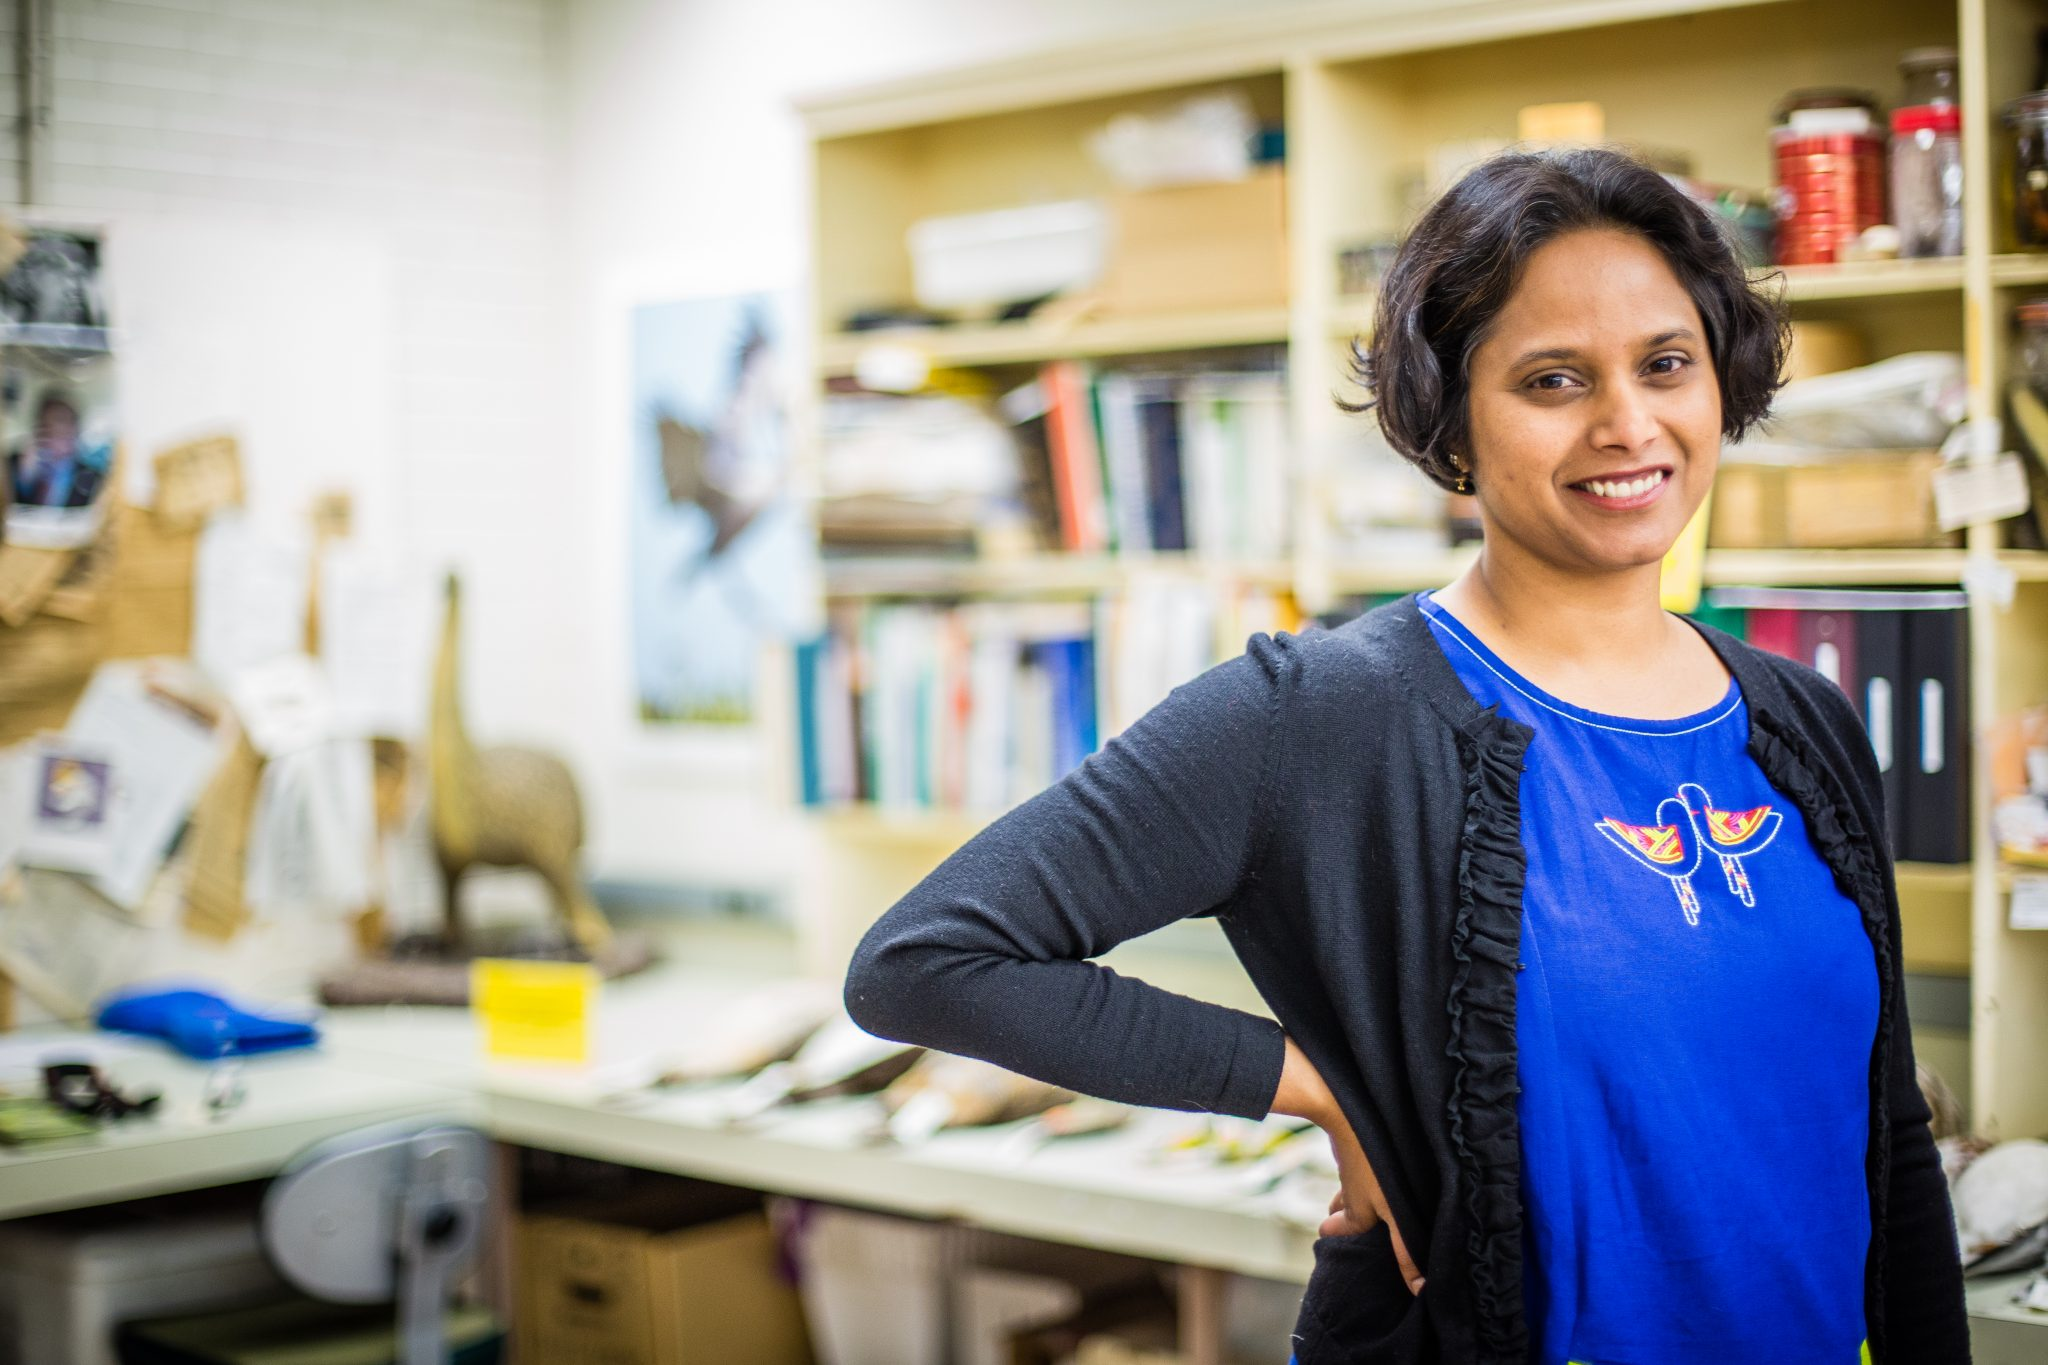 A portrait of Dr Sushma Reddy, new Breckenridge Chair of Ornithology, in her office